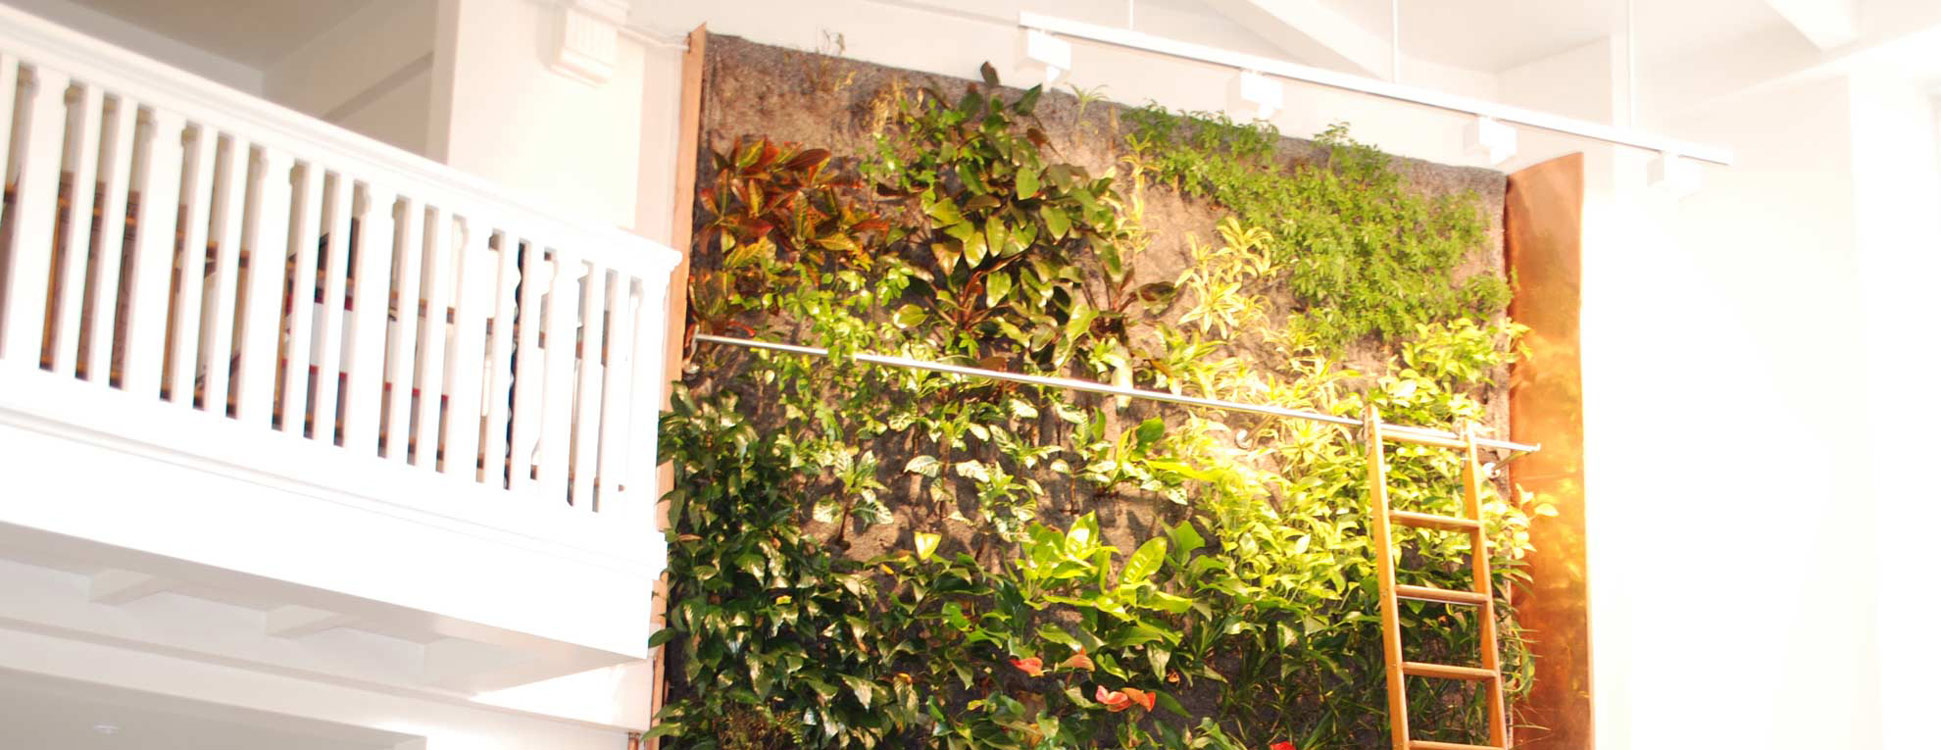 Luxury Living Wall Air Plants Image - All About Wallart - adelgazare ...